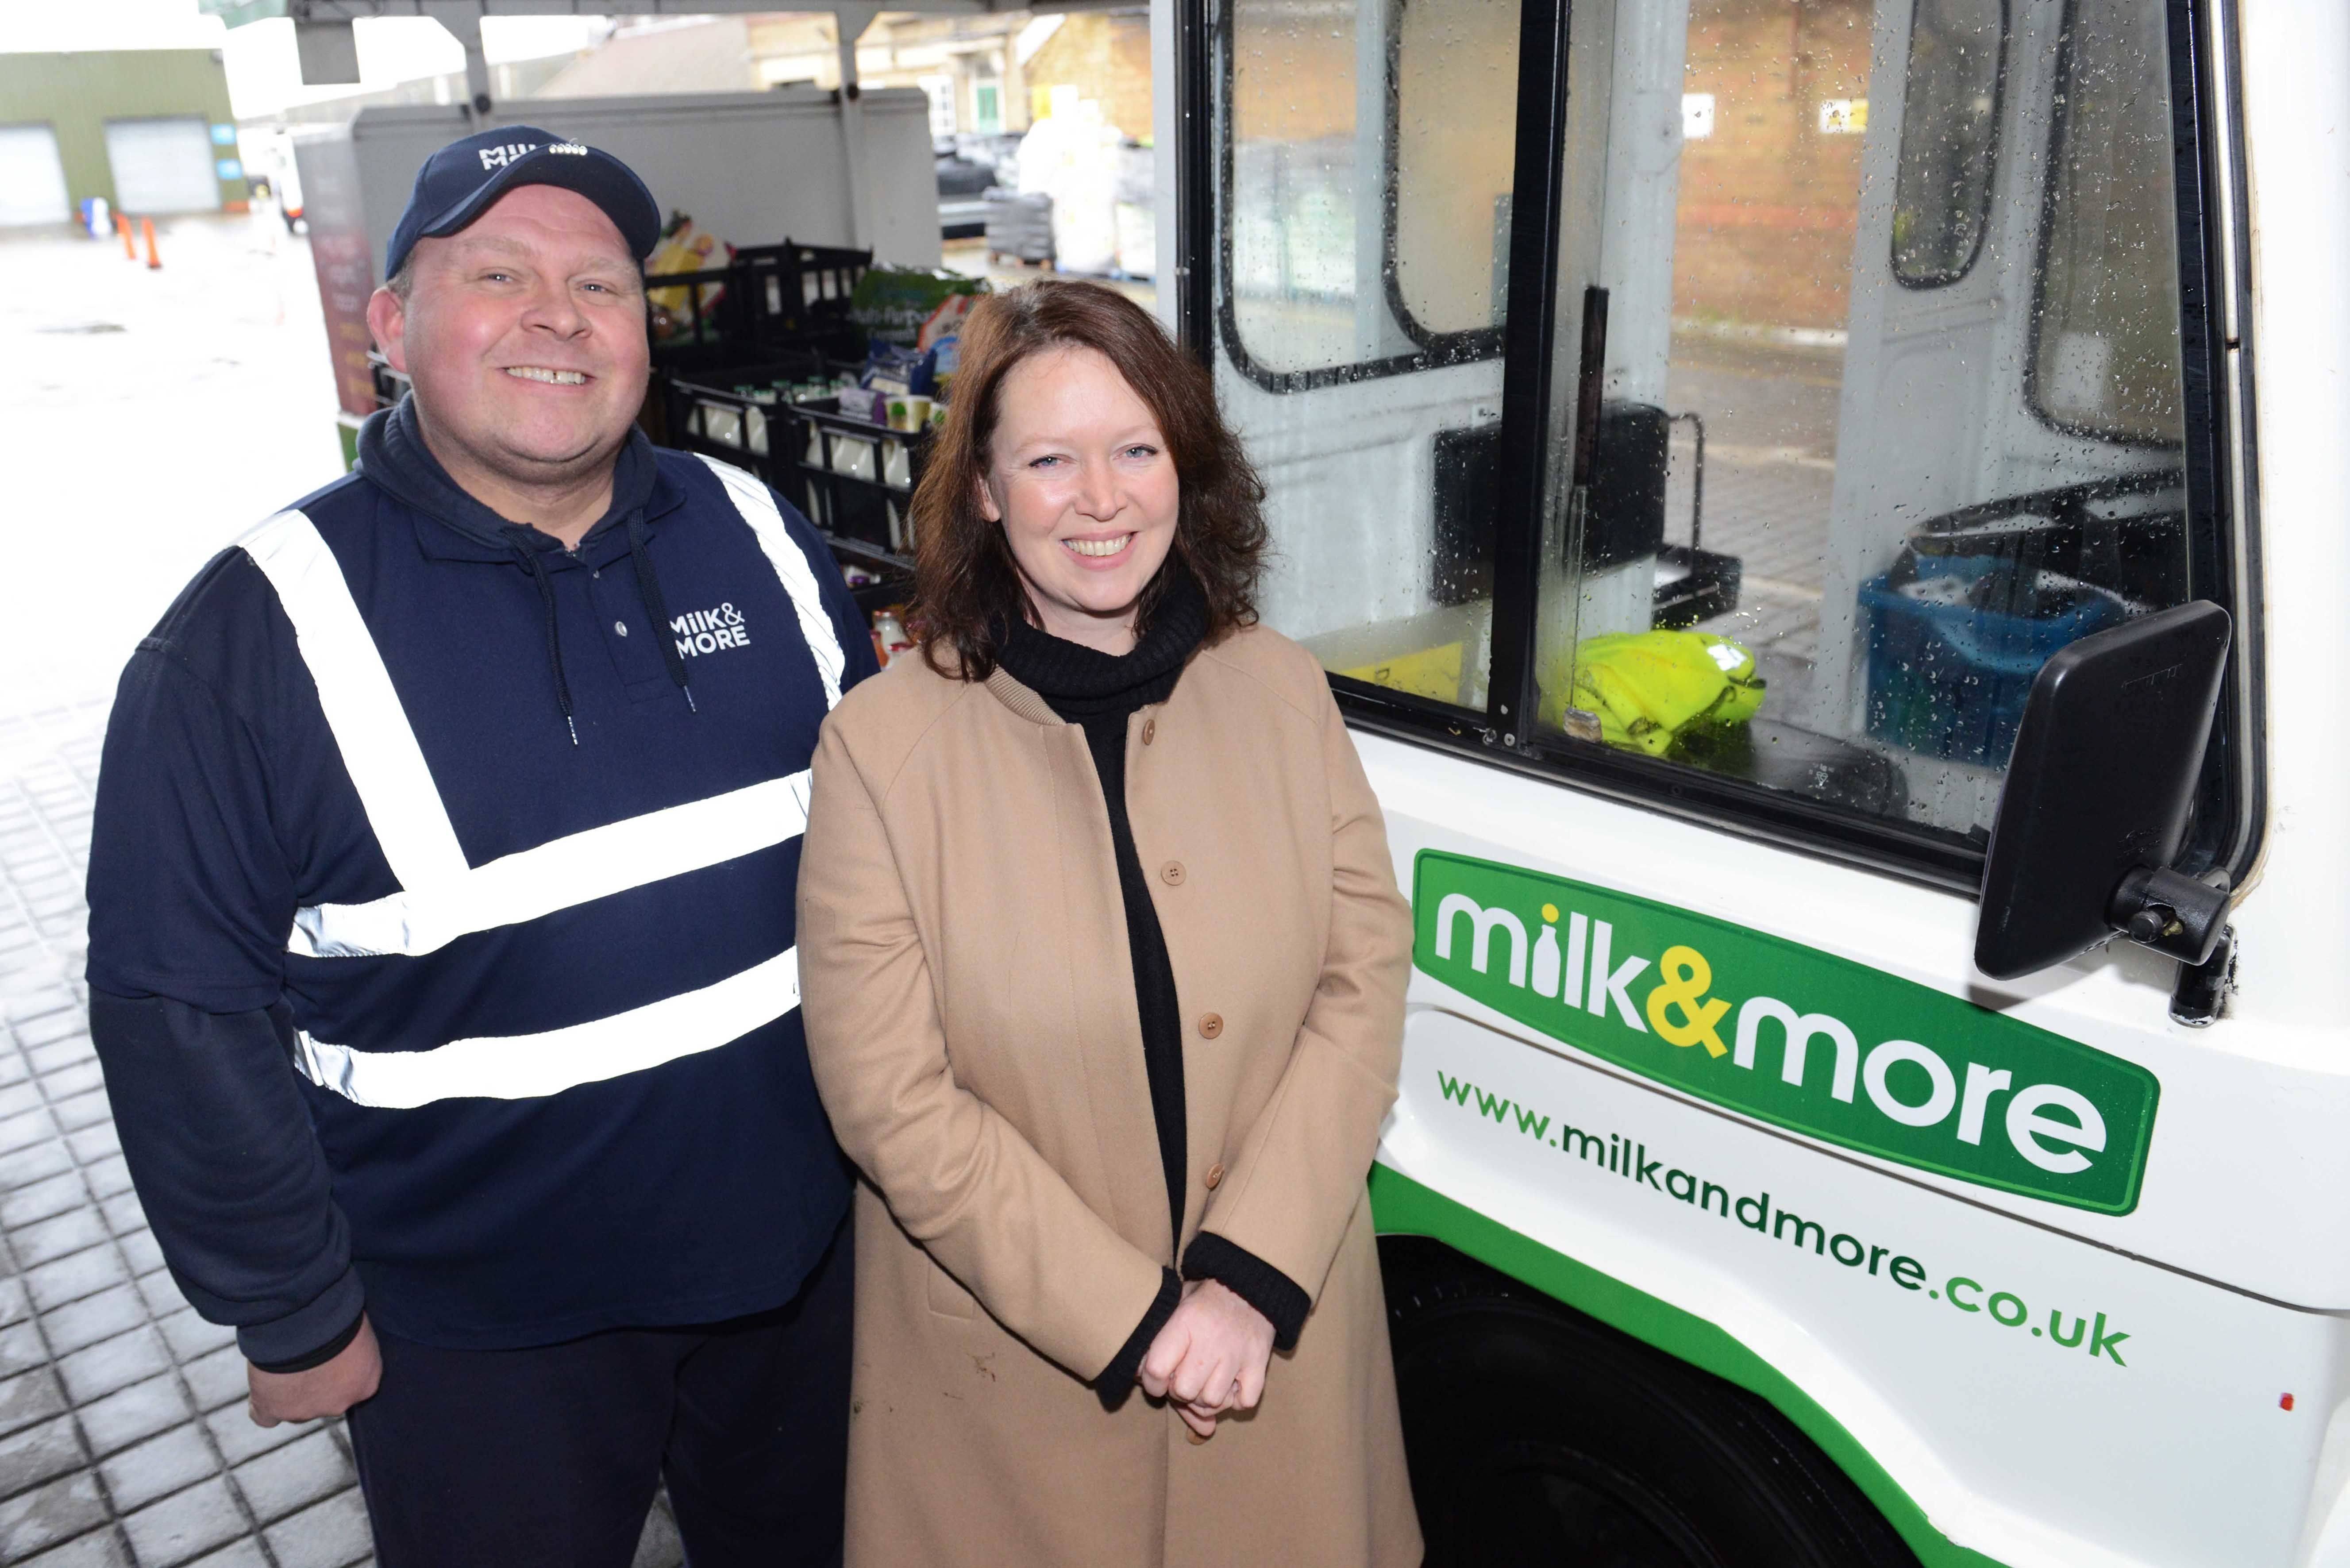 'Hero' Milkman Performs Random Acts Of Kindness On Milk